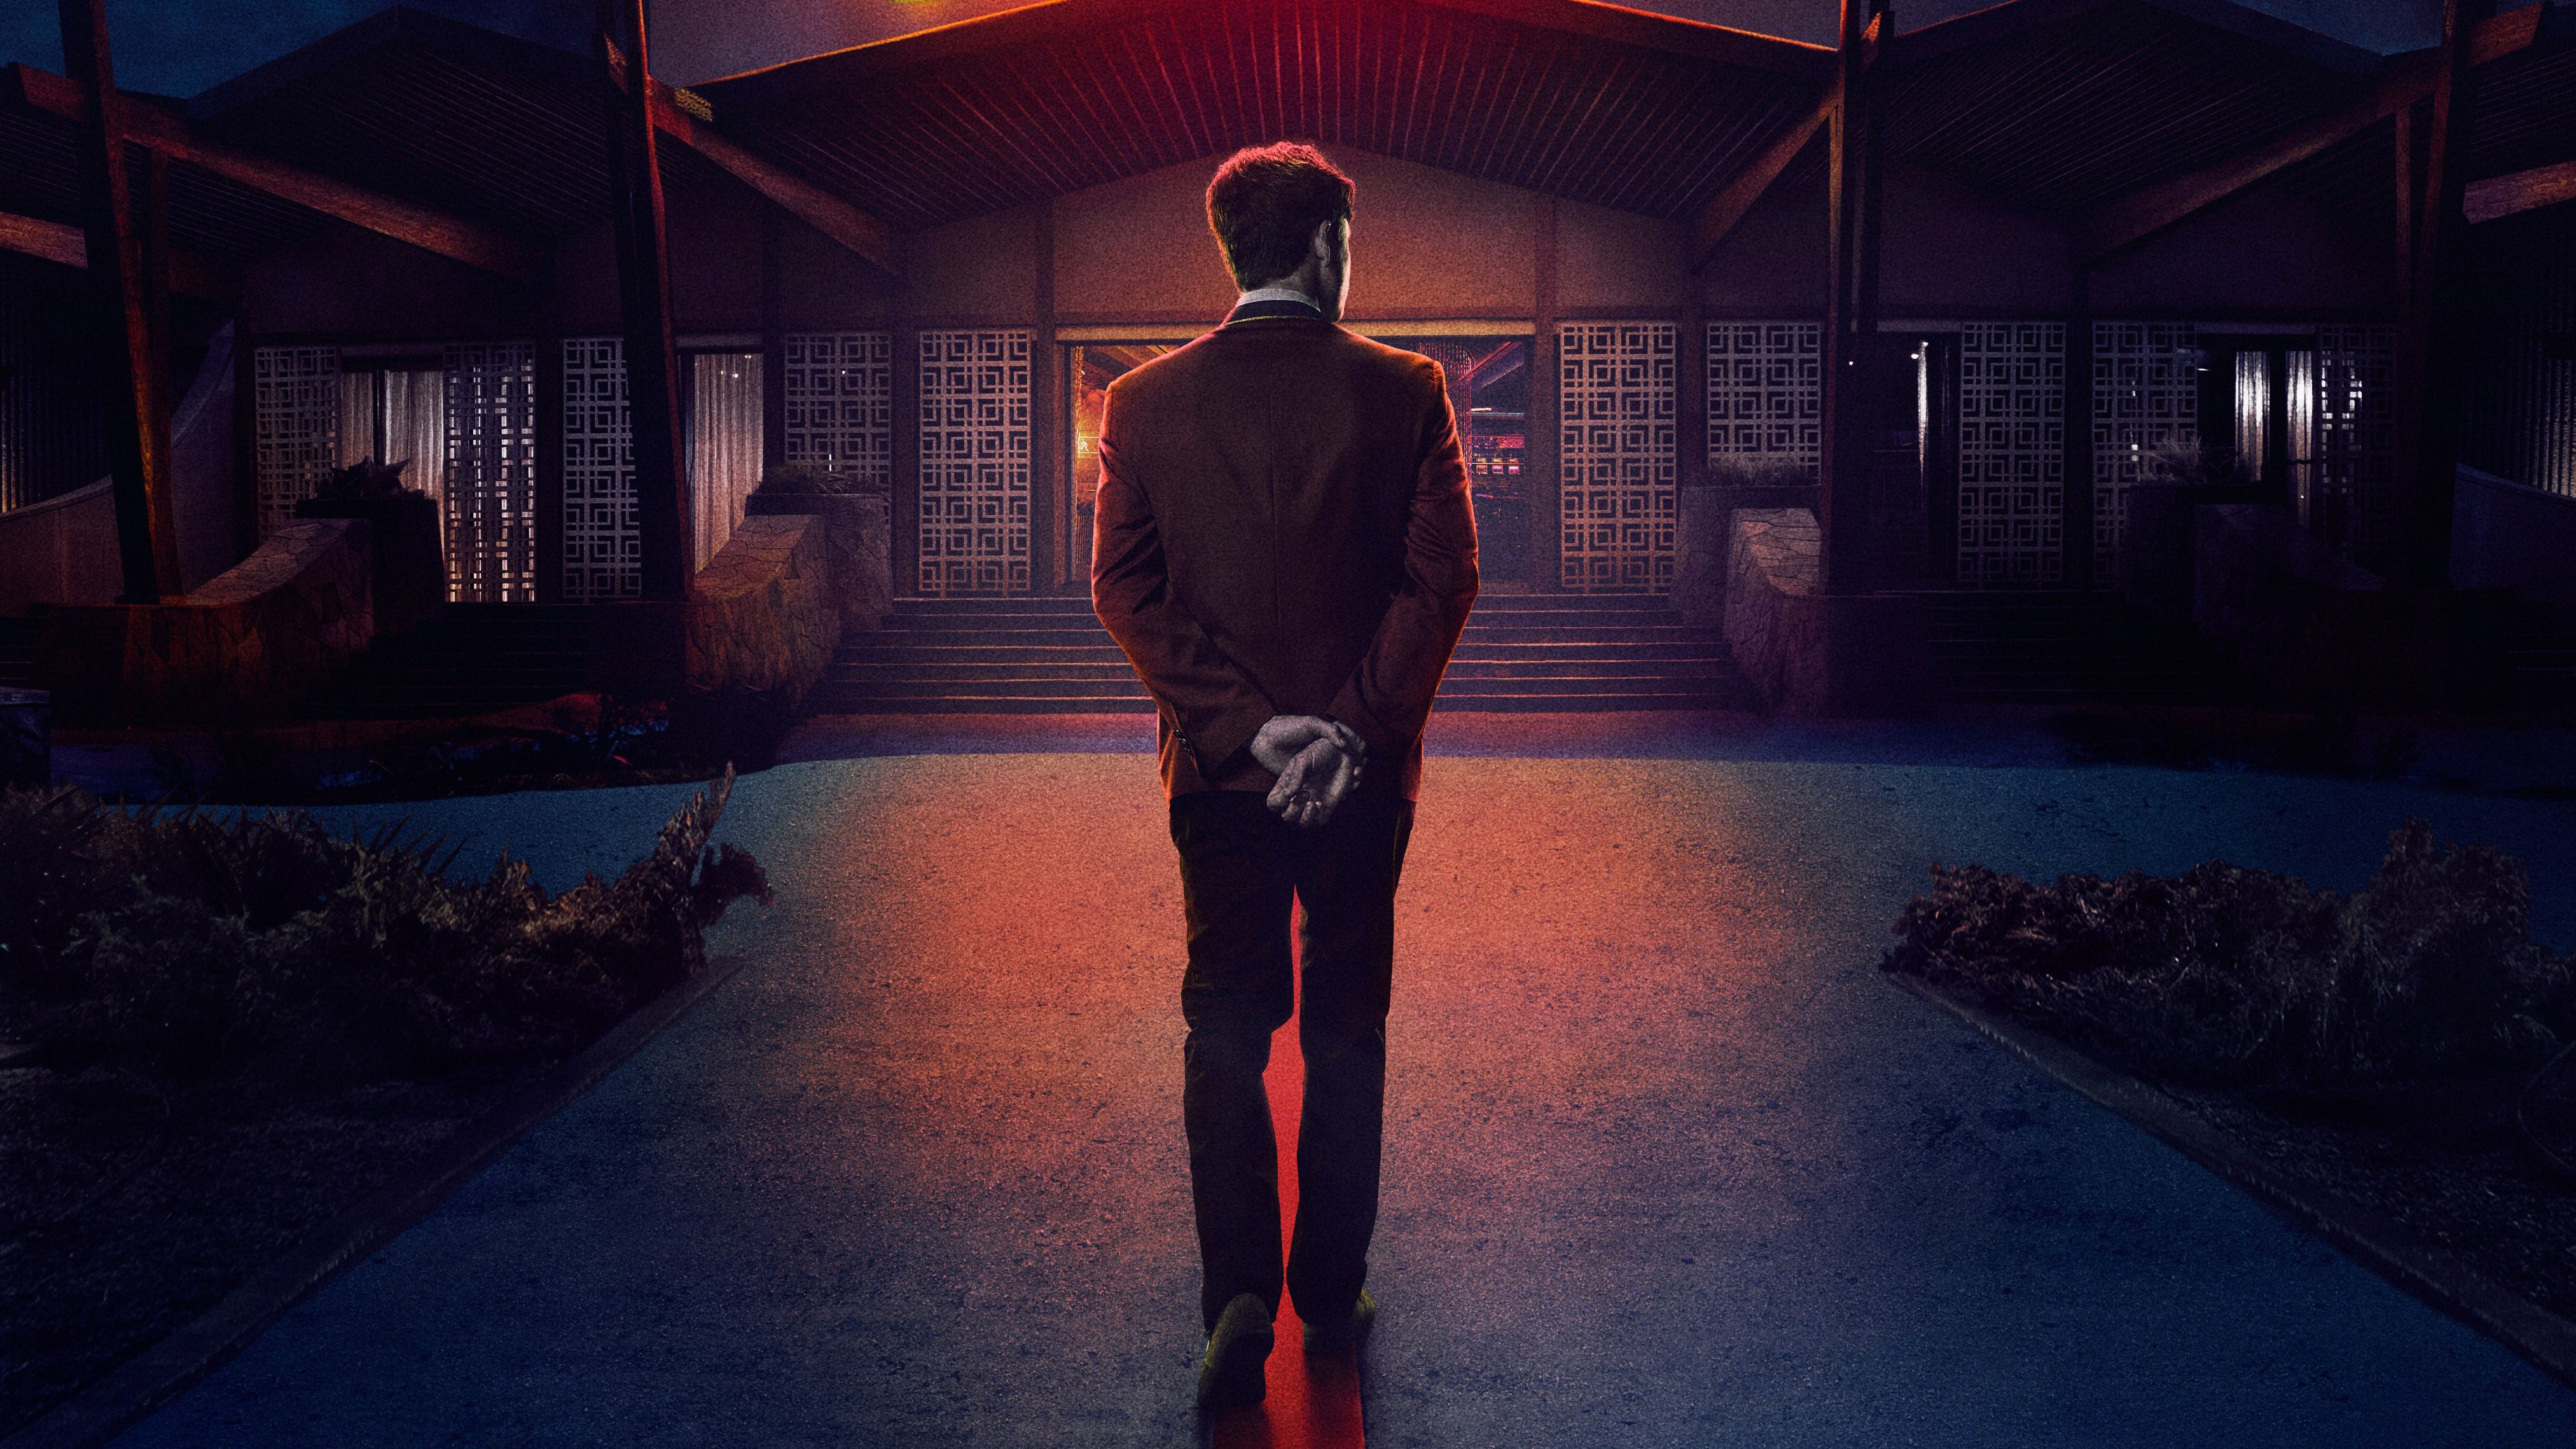 Bad Times At The El Royale Wallpapers Wallpaper Cave